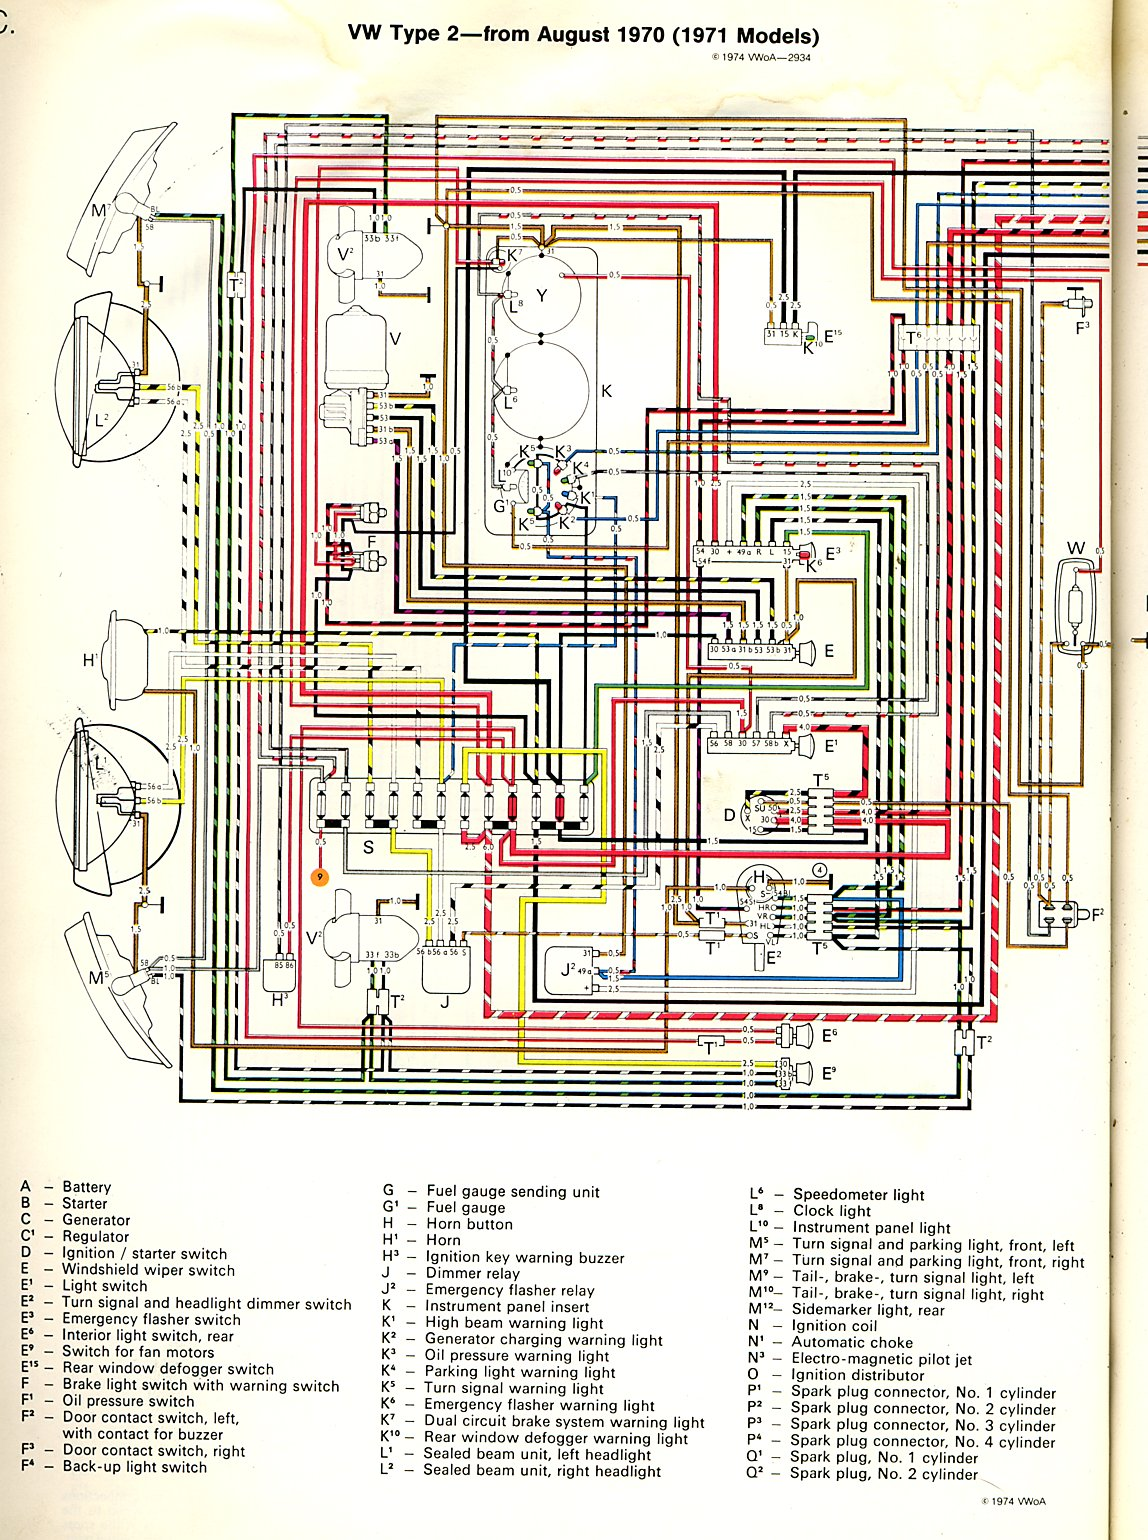 baybus_71a thesamba com type 2 wiring diagrams 1978 vw bus fuse box diagram at bakdesigns.co